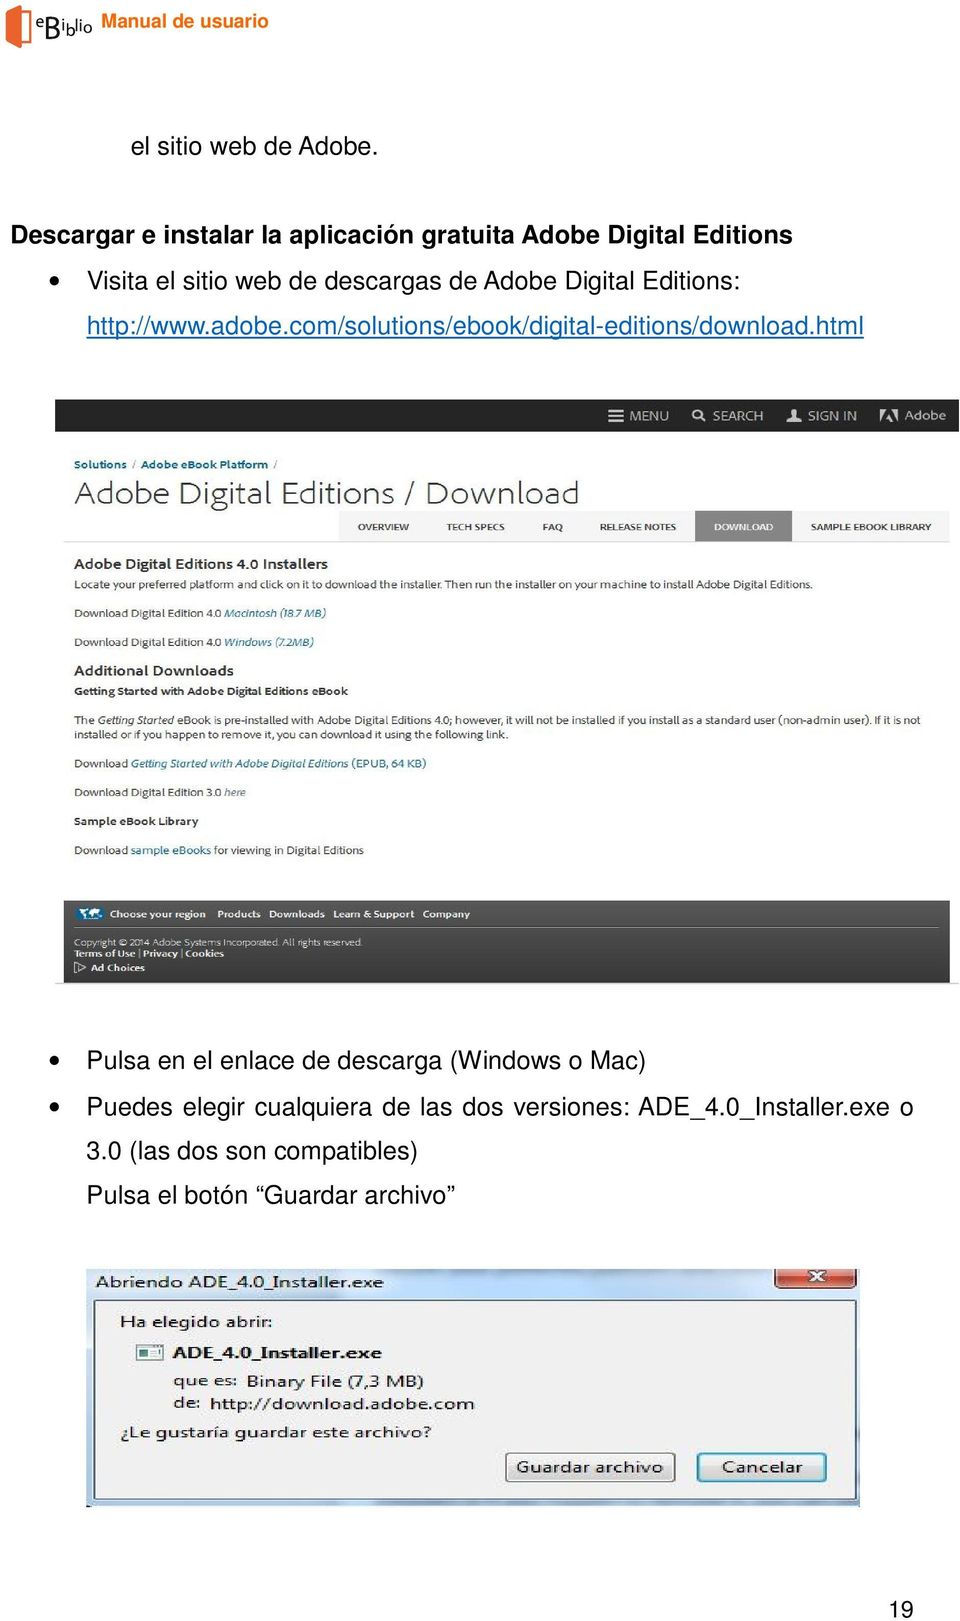 de Adobe Digital Editions: http://www.adobe.com/solutions/ebook/digital-editions/download.